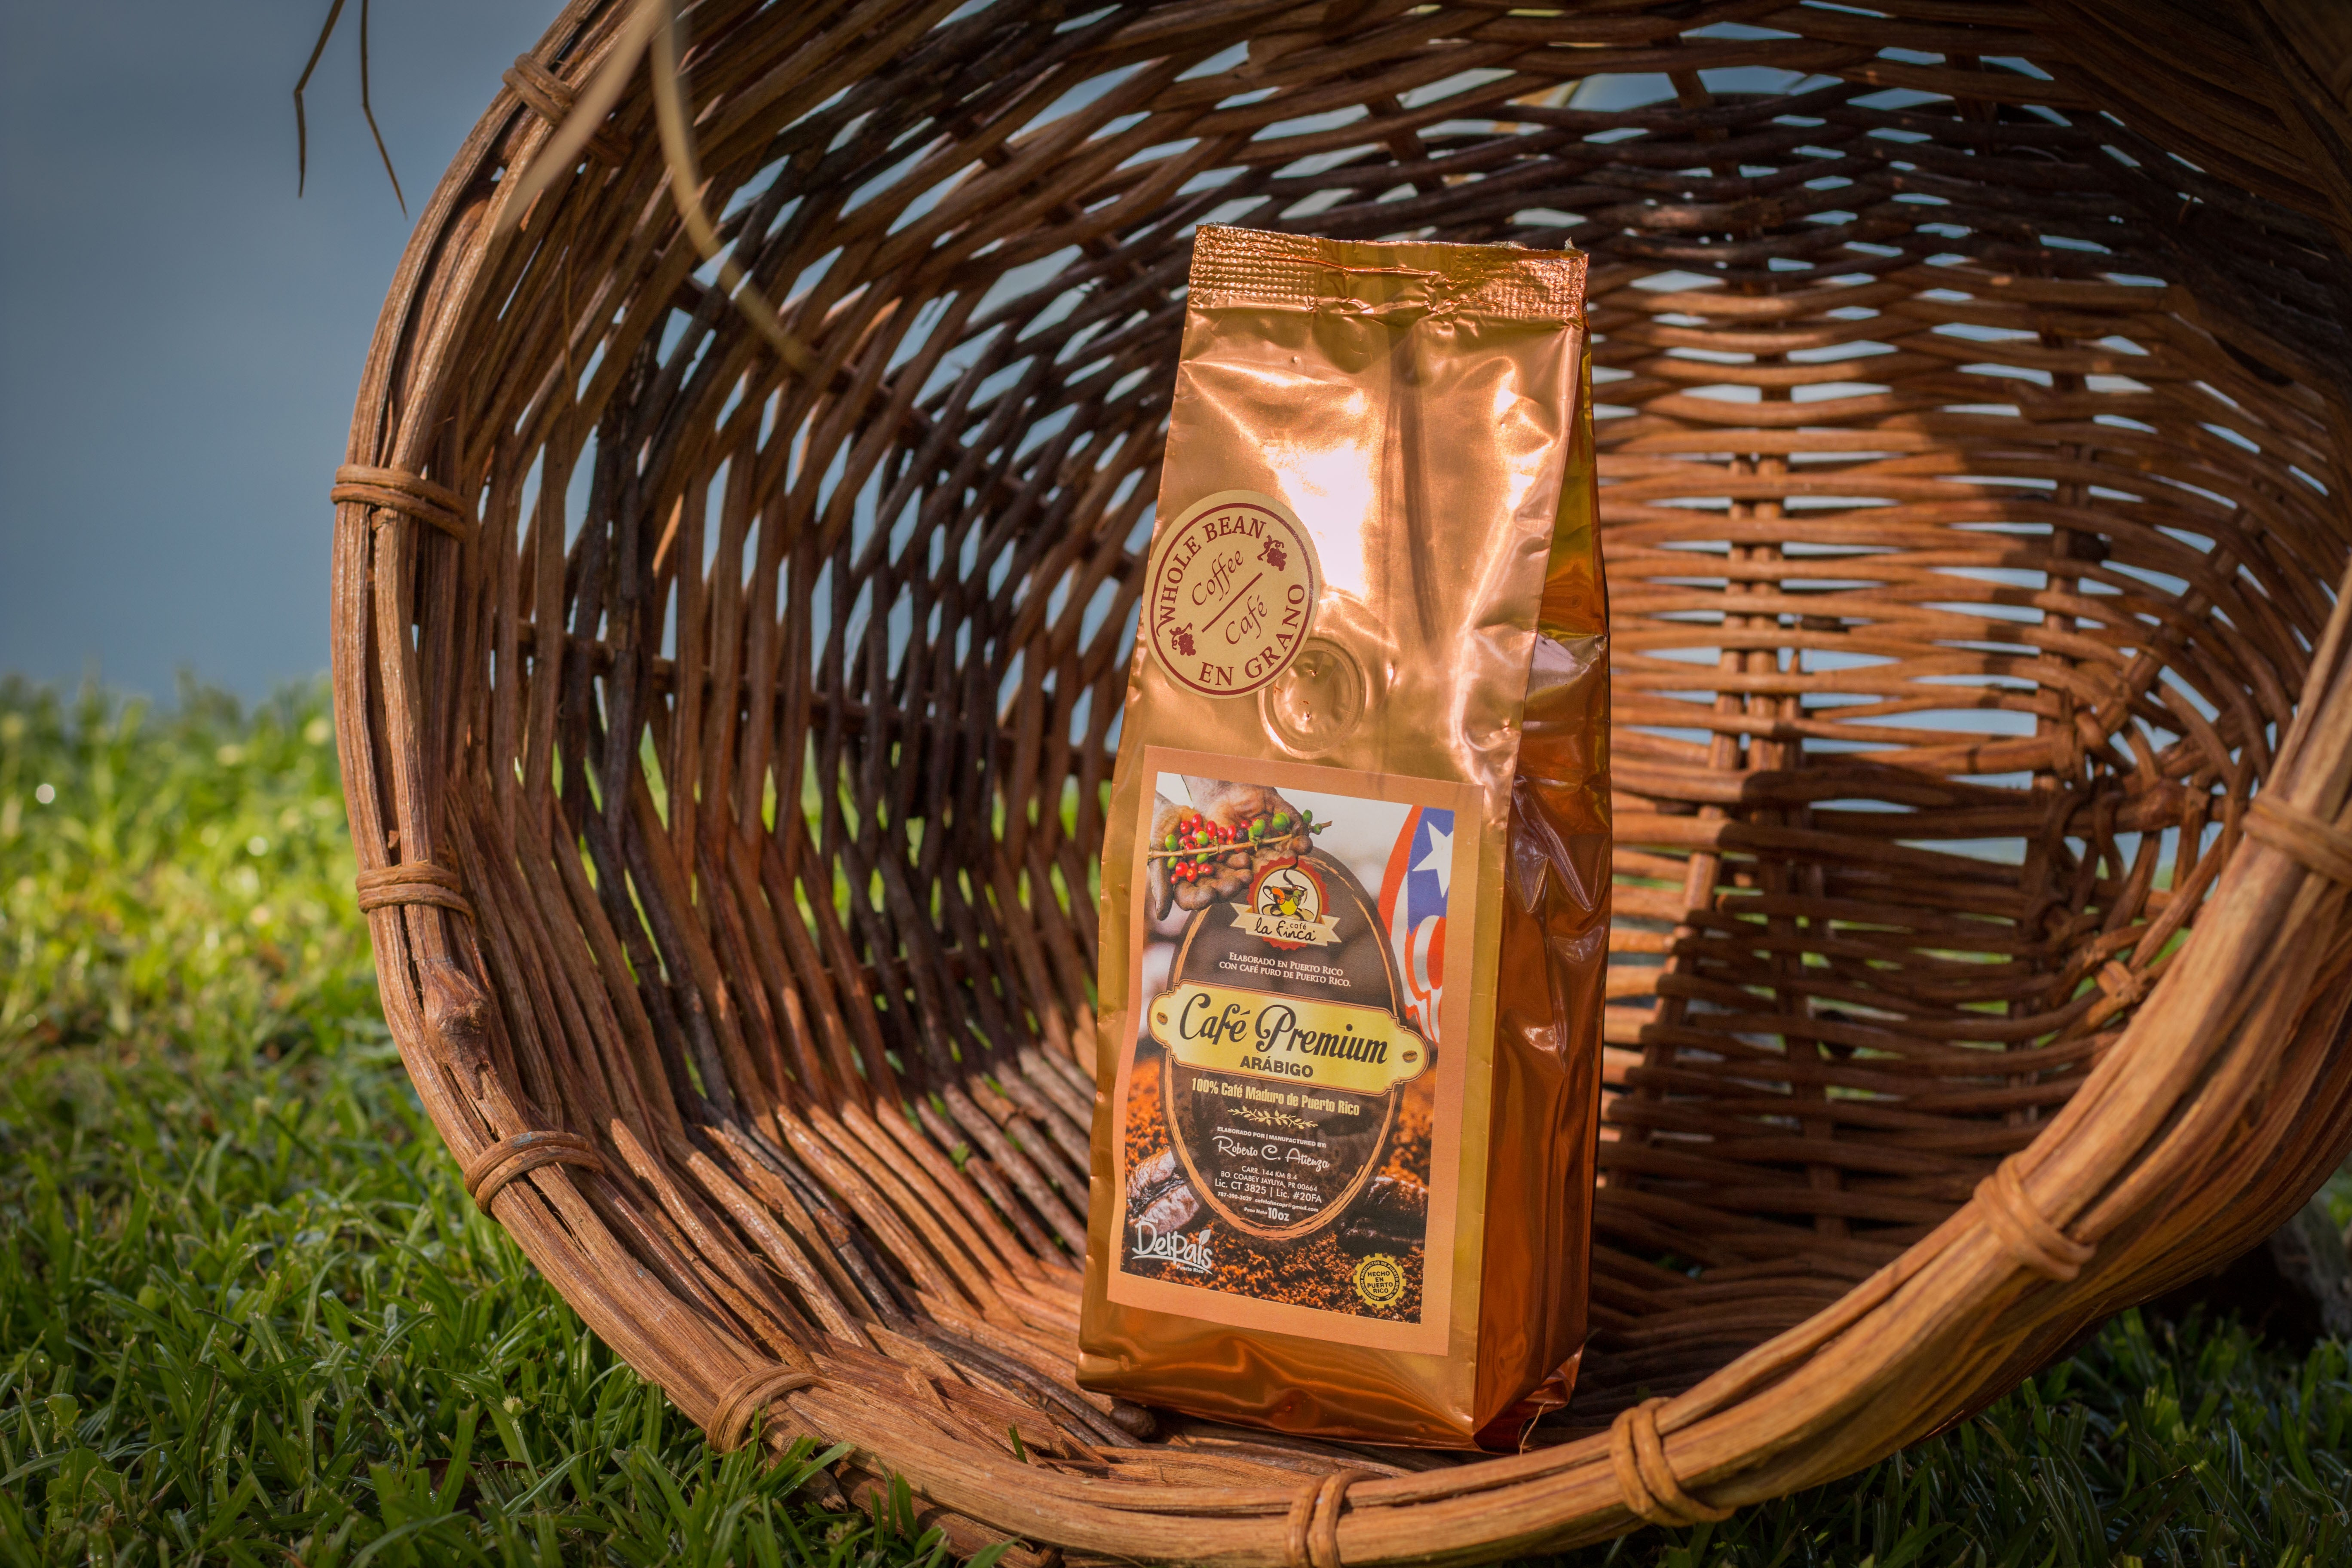 CAFÉ LA FINCA PREMIUM (10 oz. Whole bean)